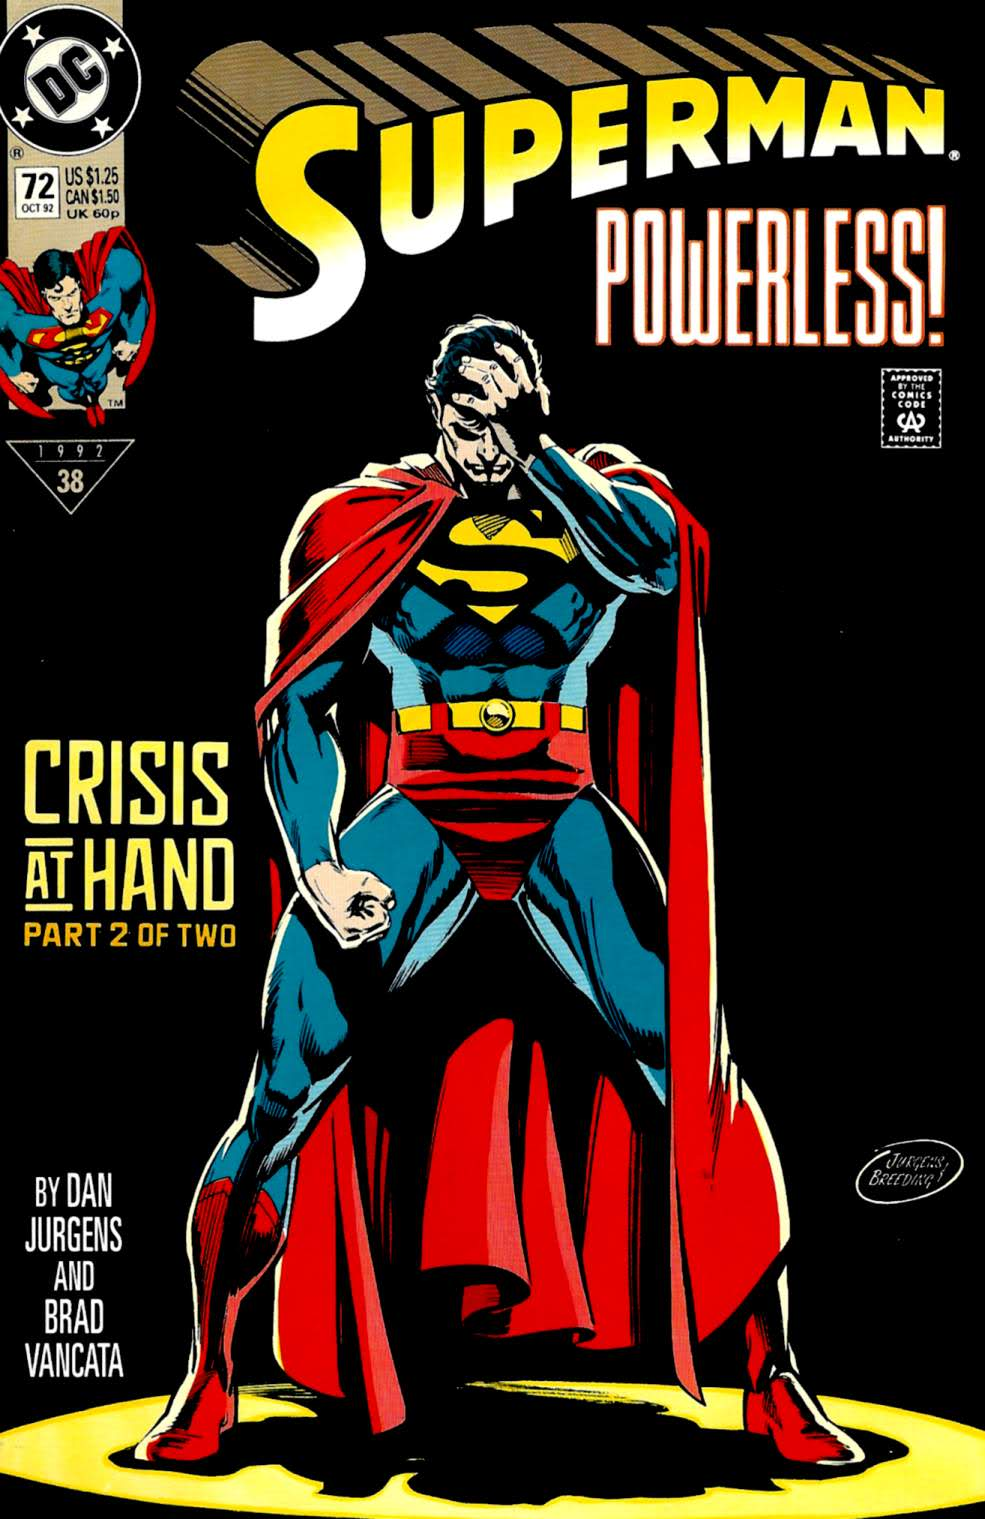 Cover art to  Superman  (vol. 2) #72, by Dan Jurgens and Brett Breeding.